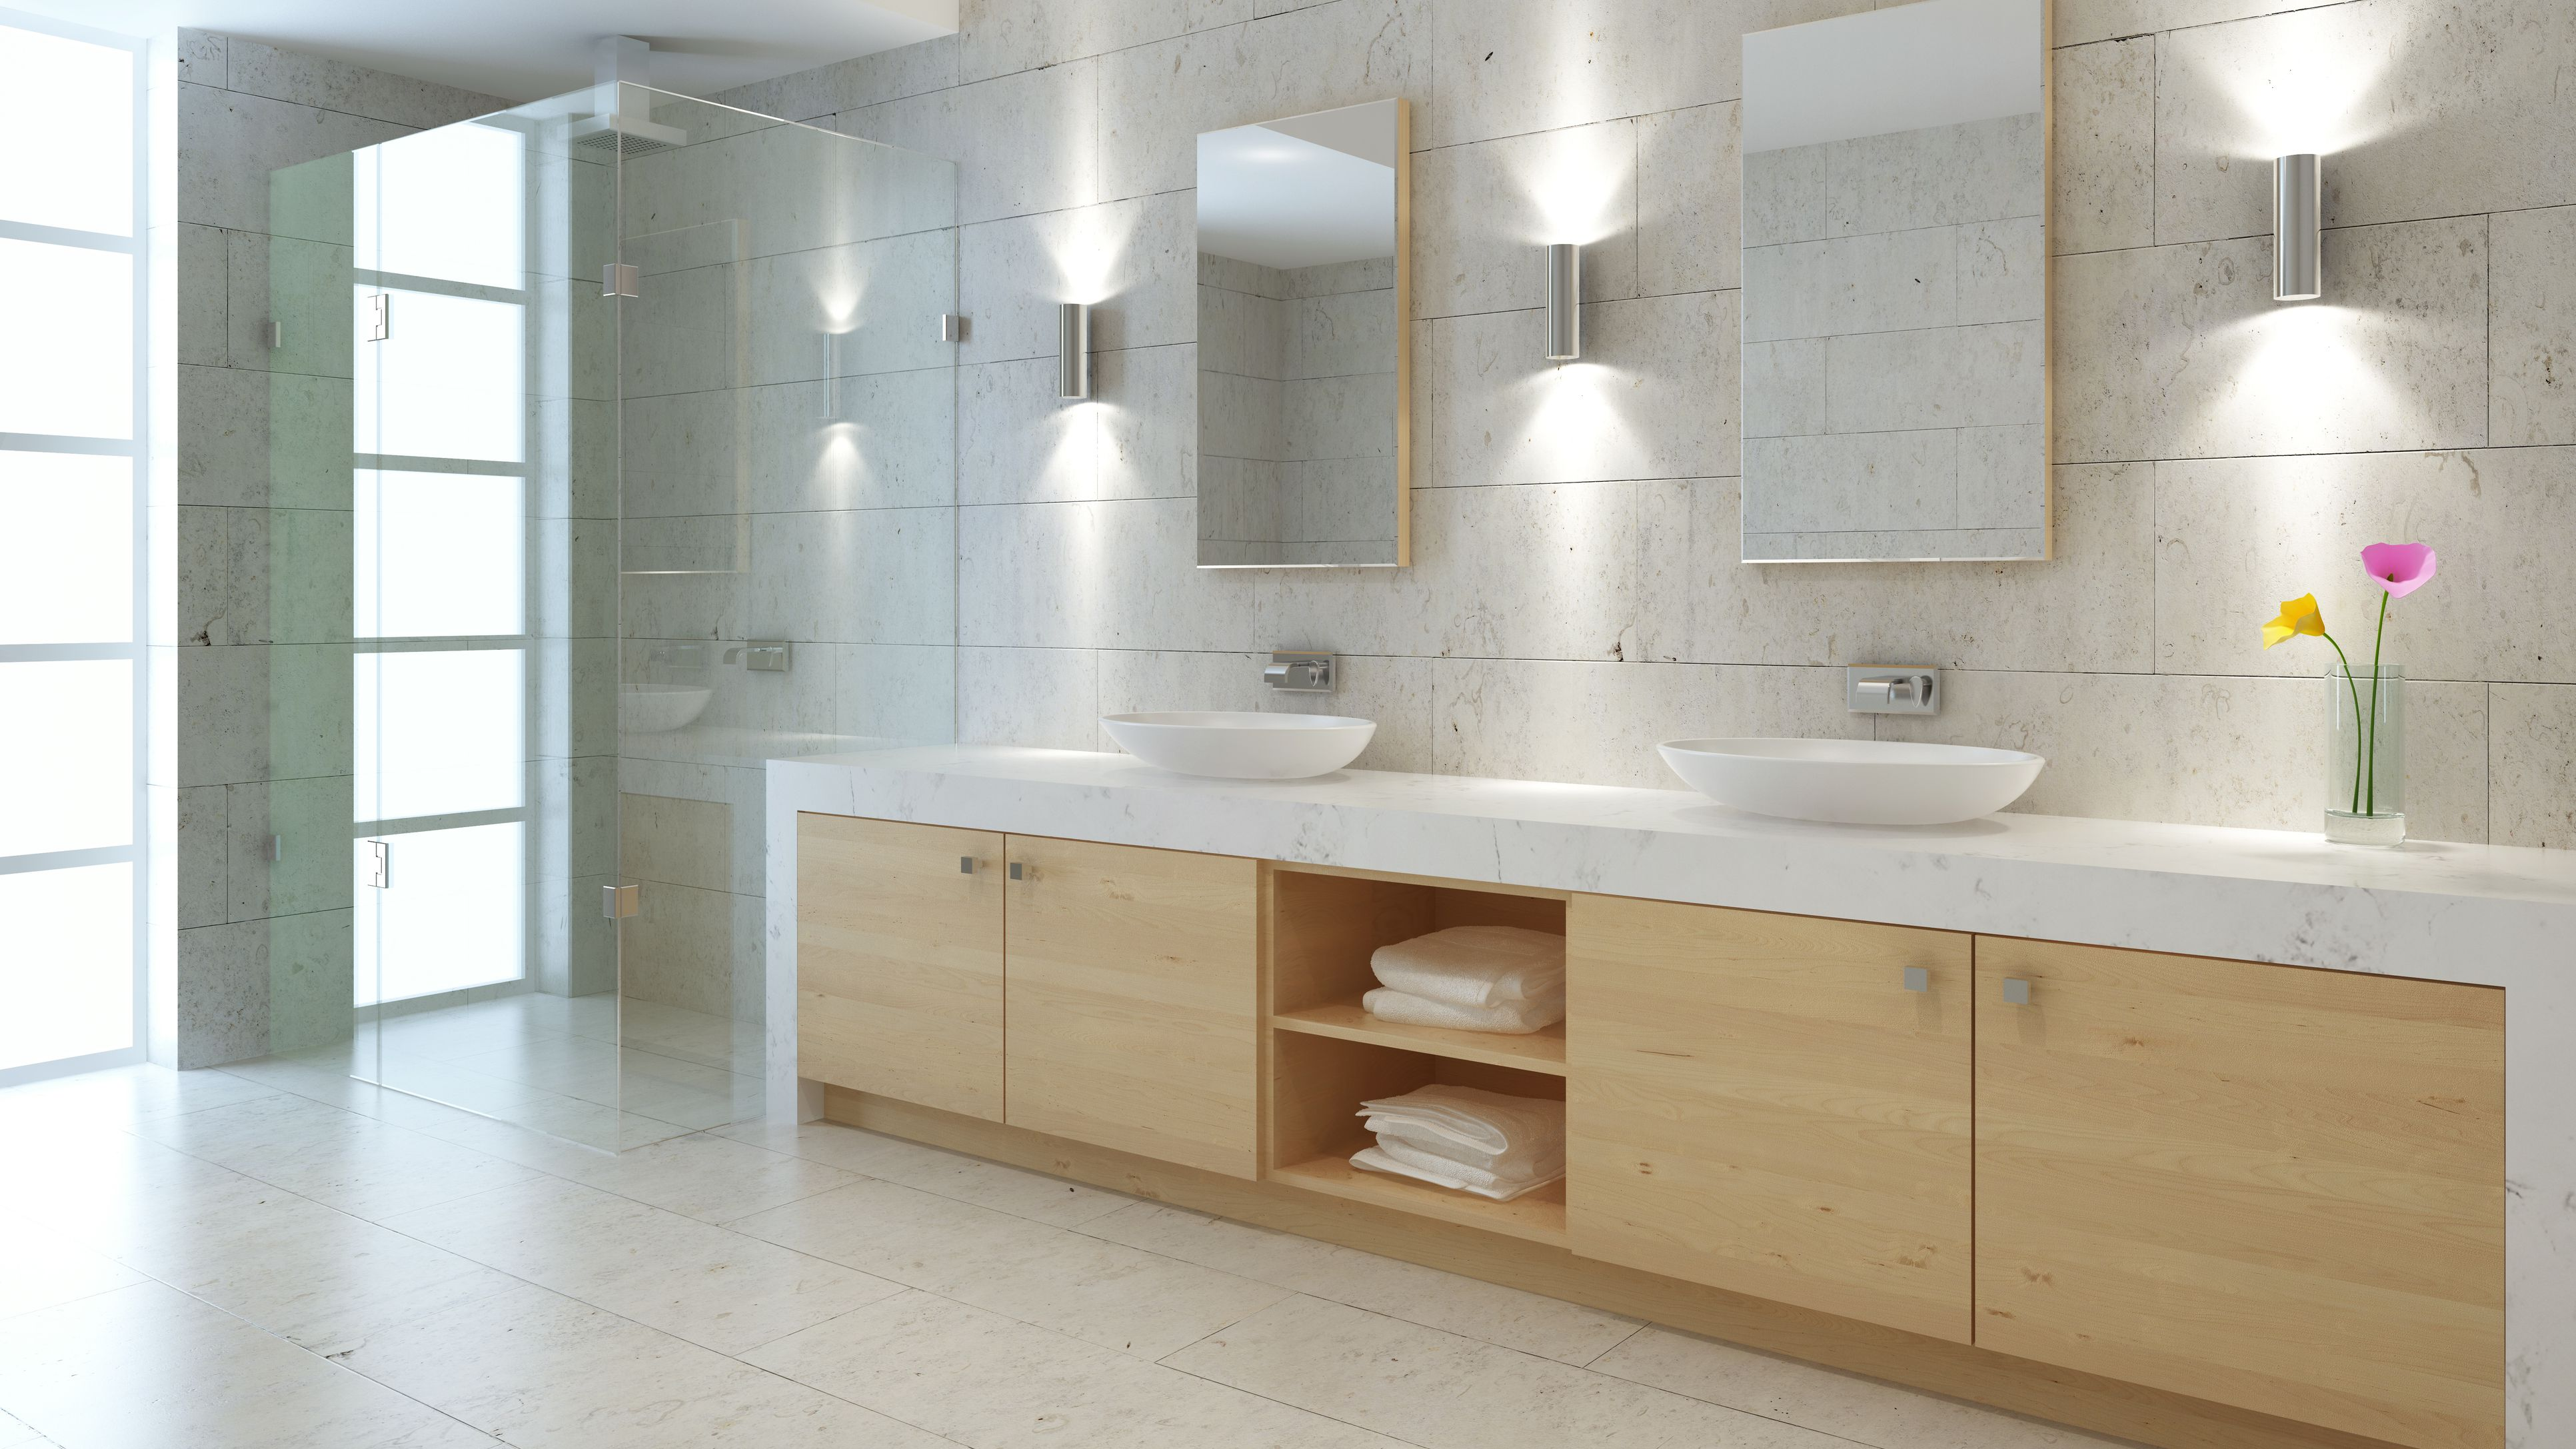 Bathroom Codes And Design Best Practices